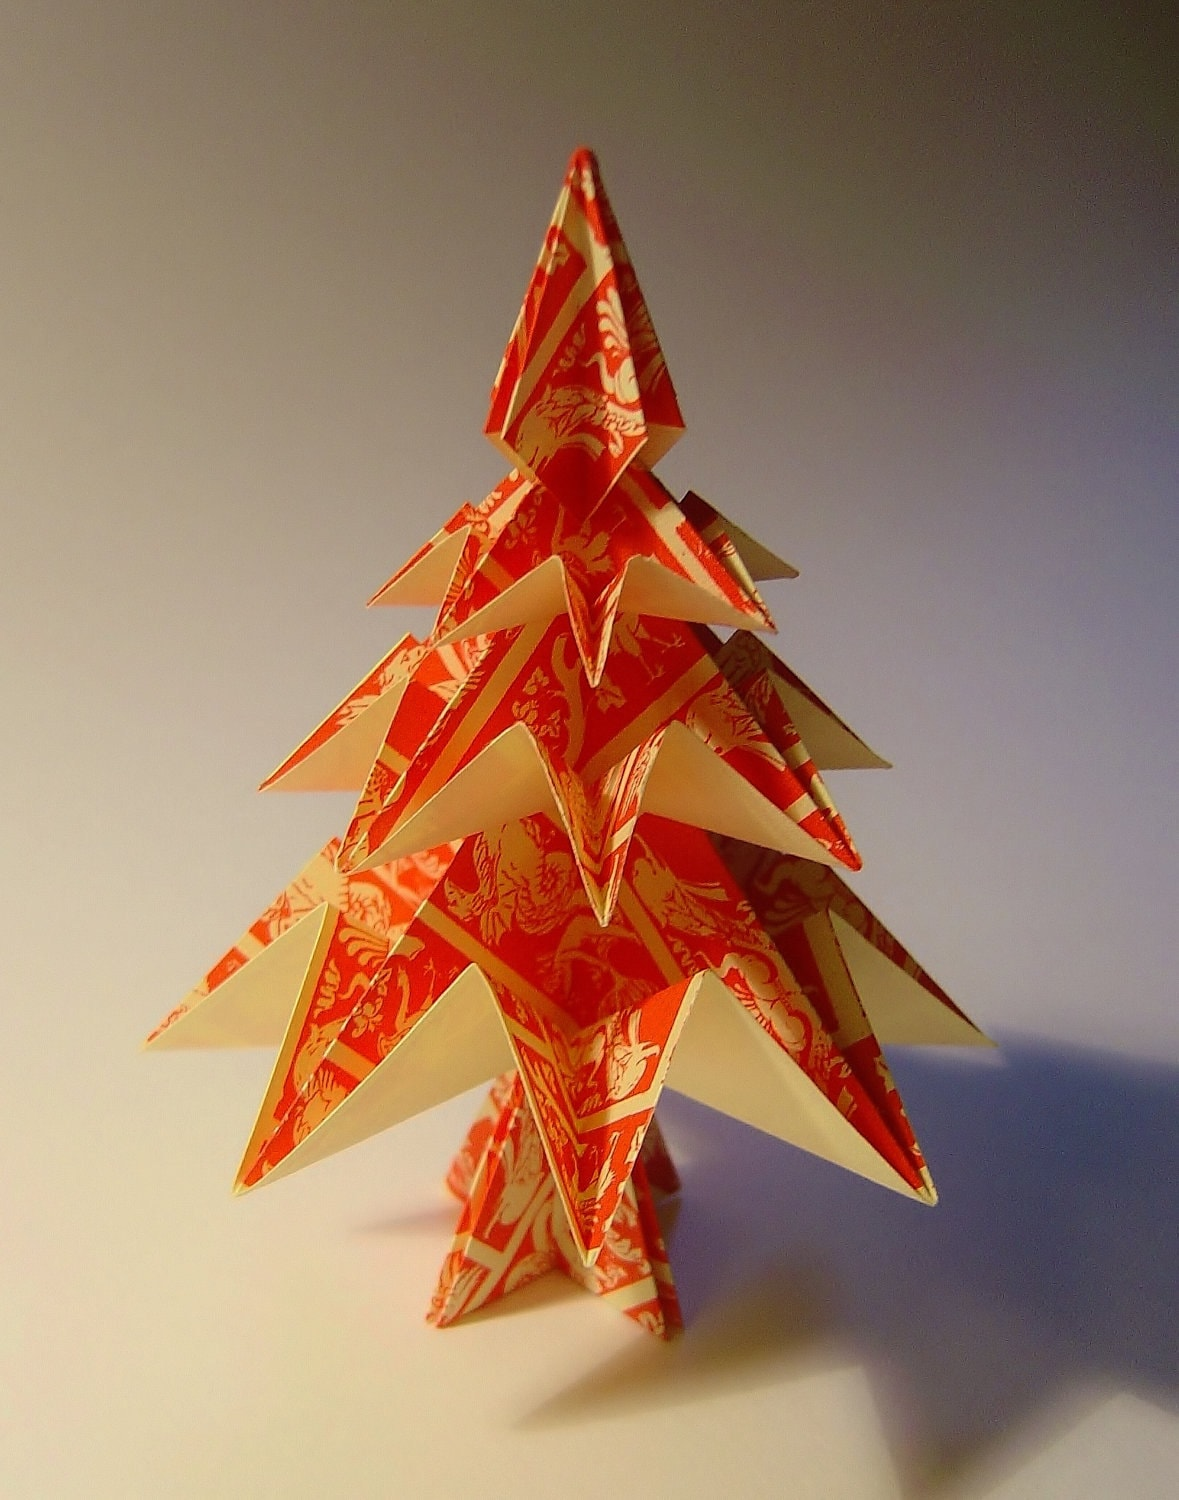 Small Origami Christmas Tree . Ornament for home or Christmas Table.